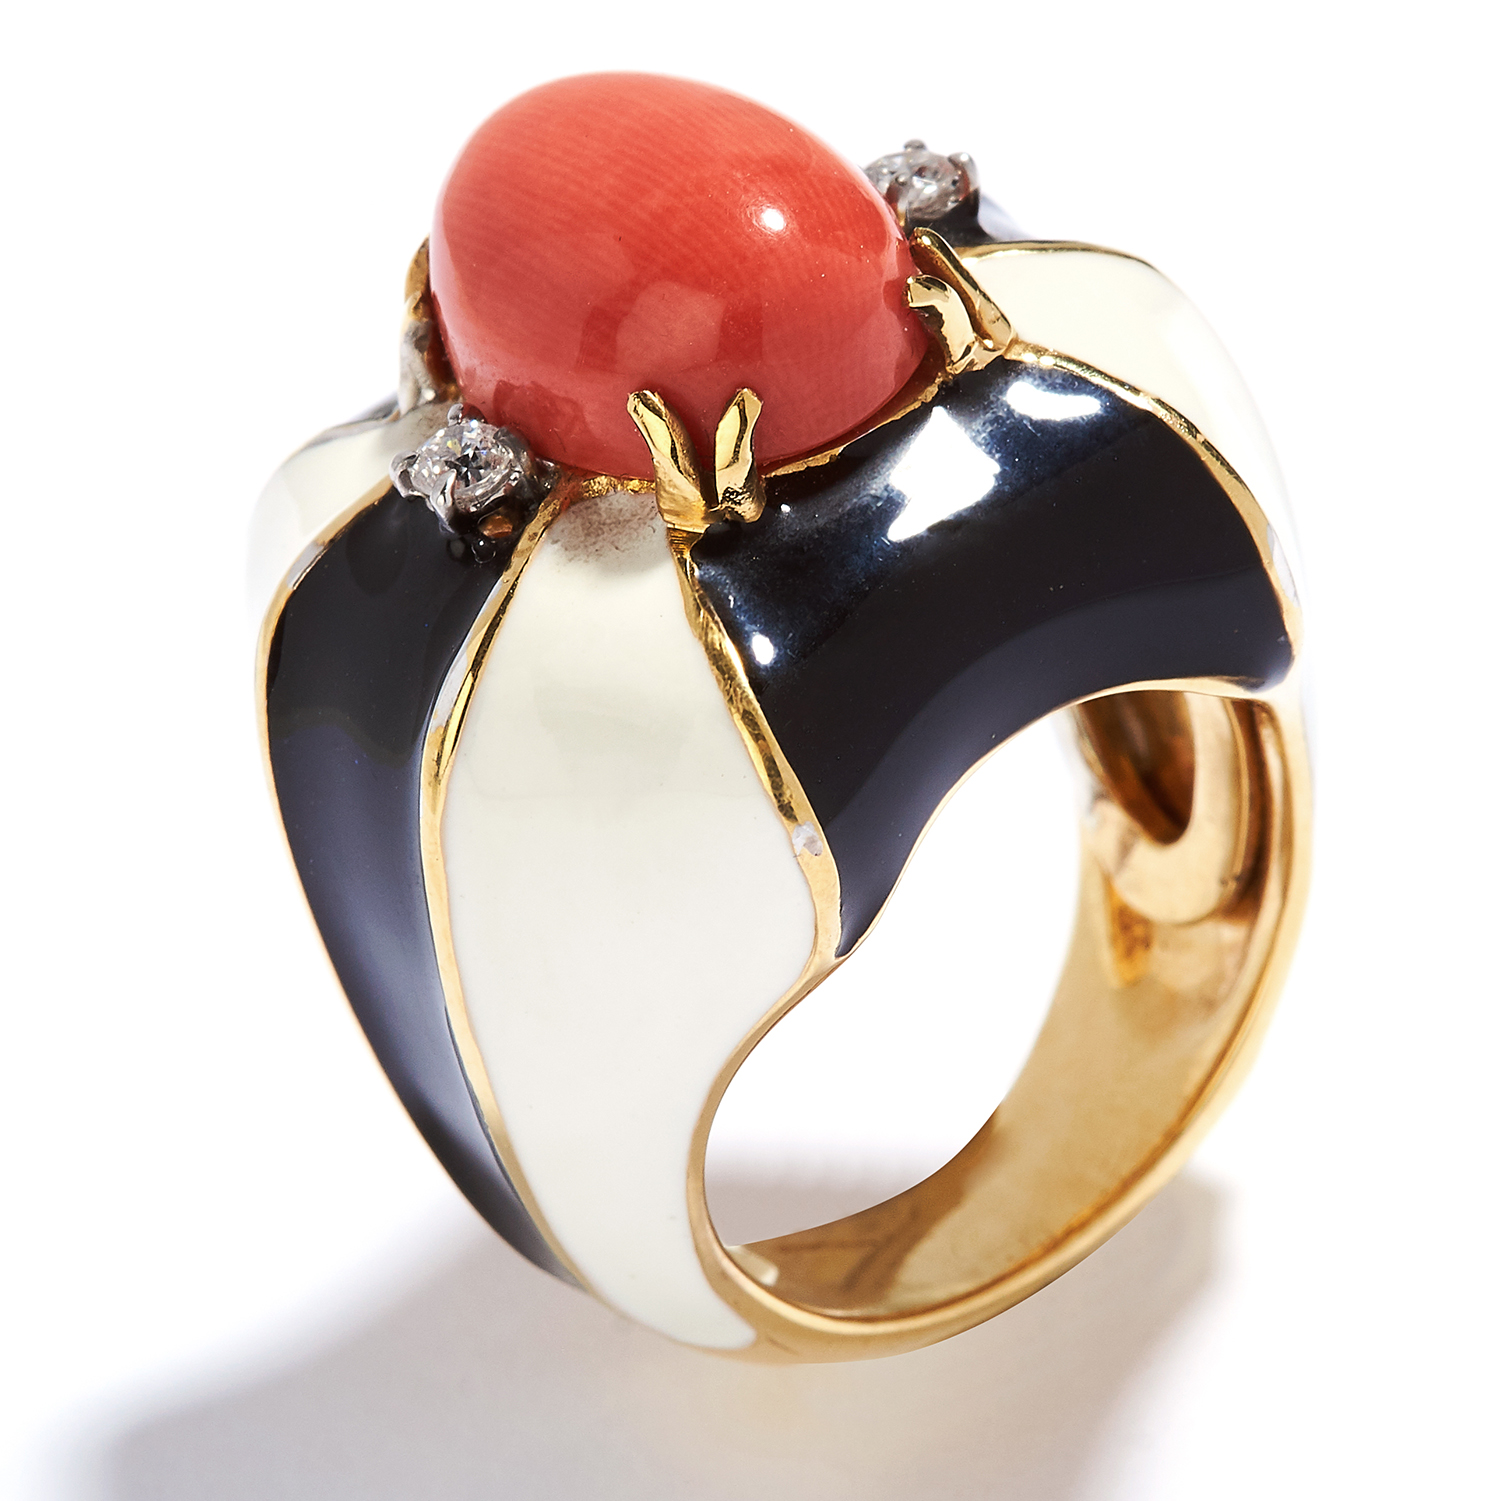 CORAL, DIAMOND AND ENAMEL RING in 18ct yellow gold, the oval coral cabochon within a border of - Image 2 of 2